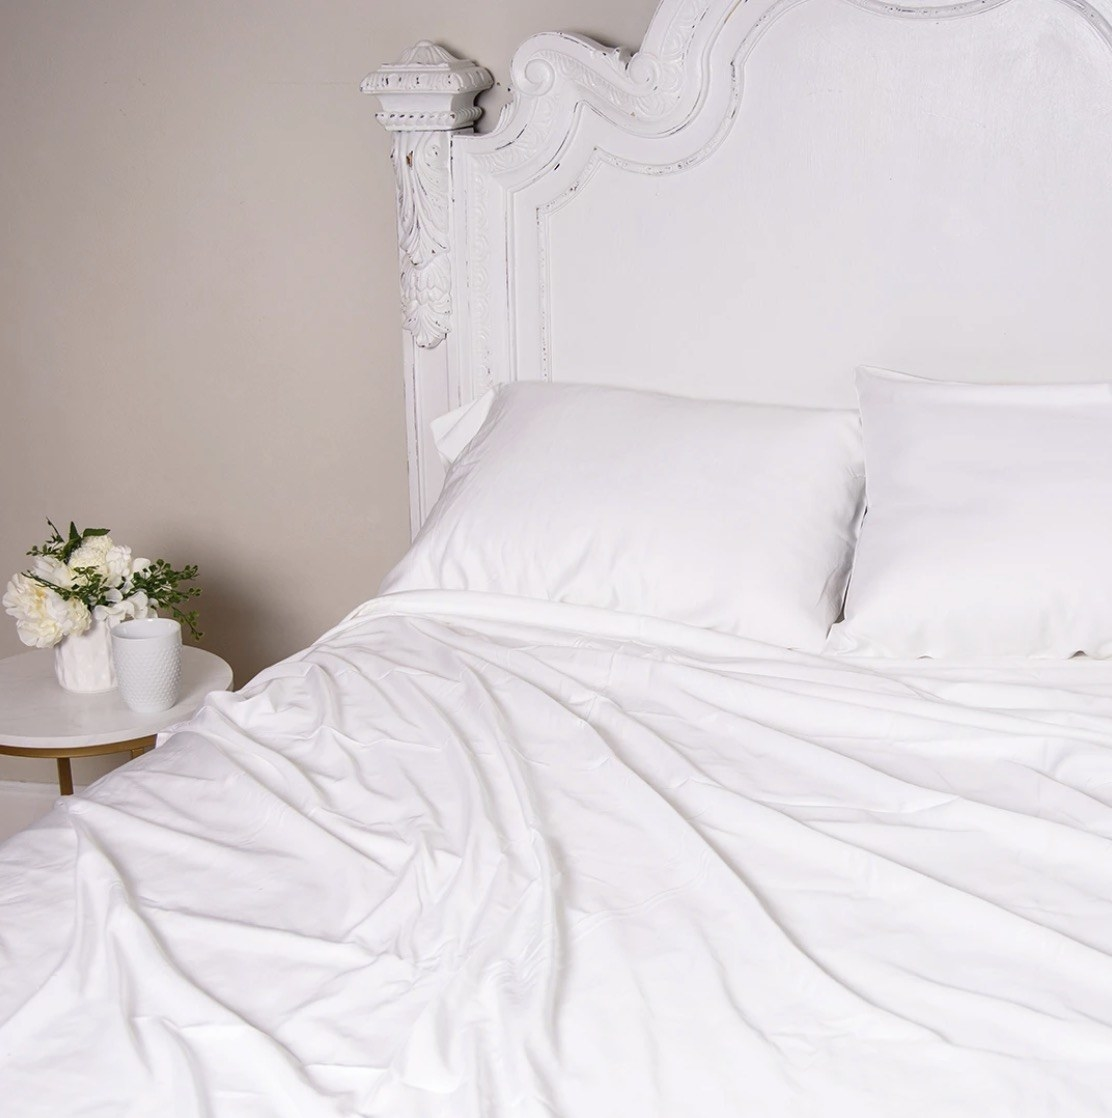 white sheets on a bed